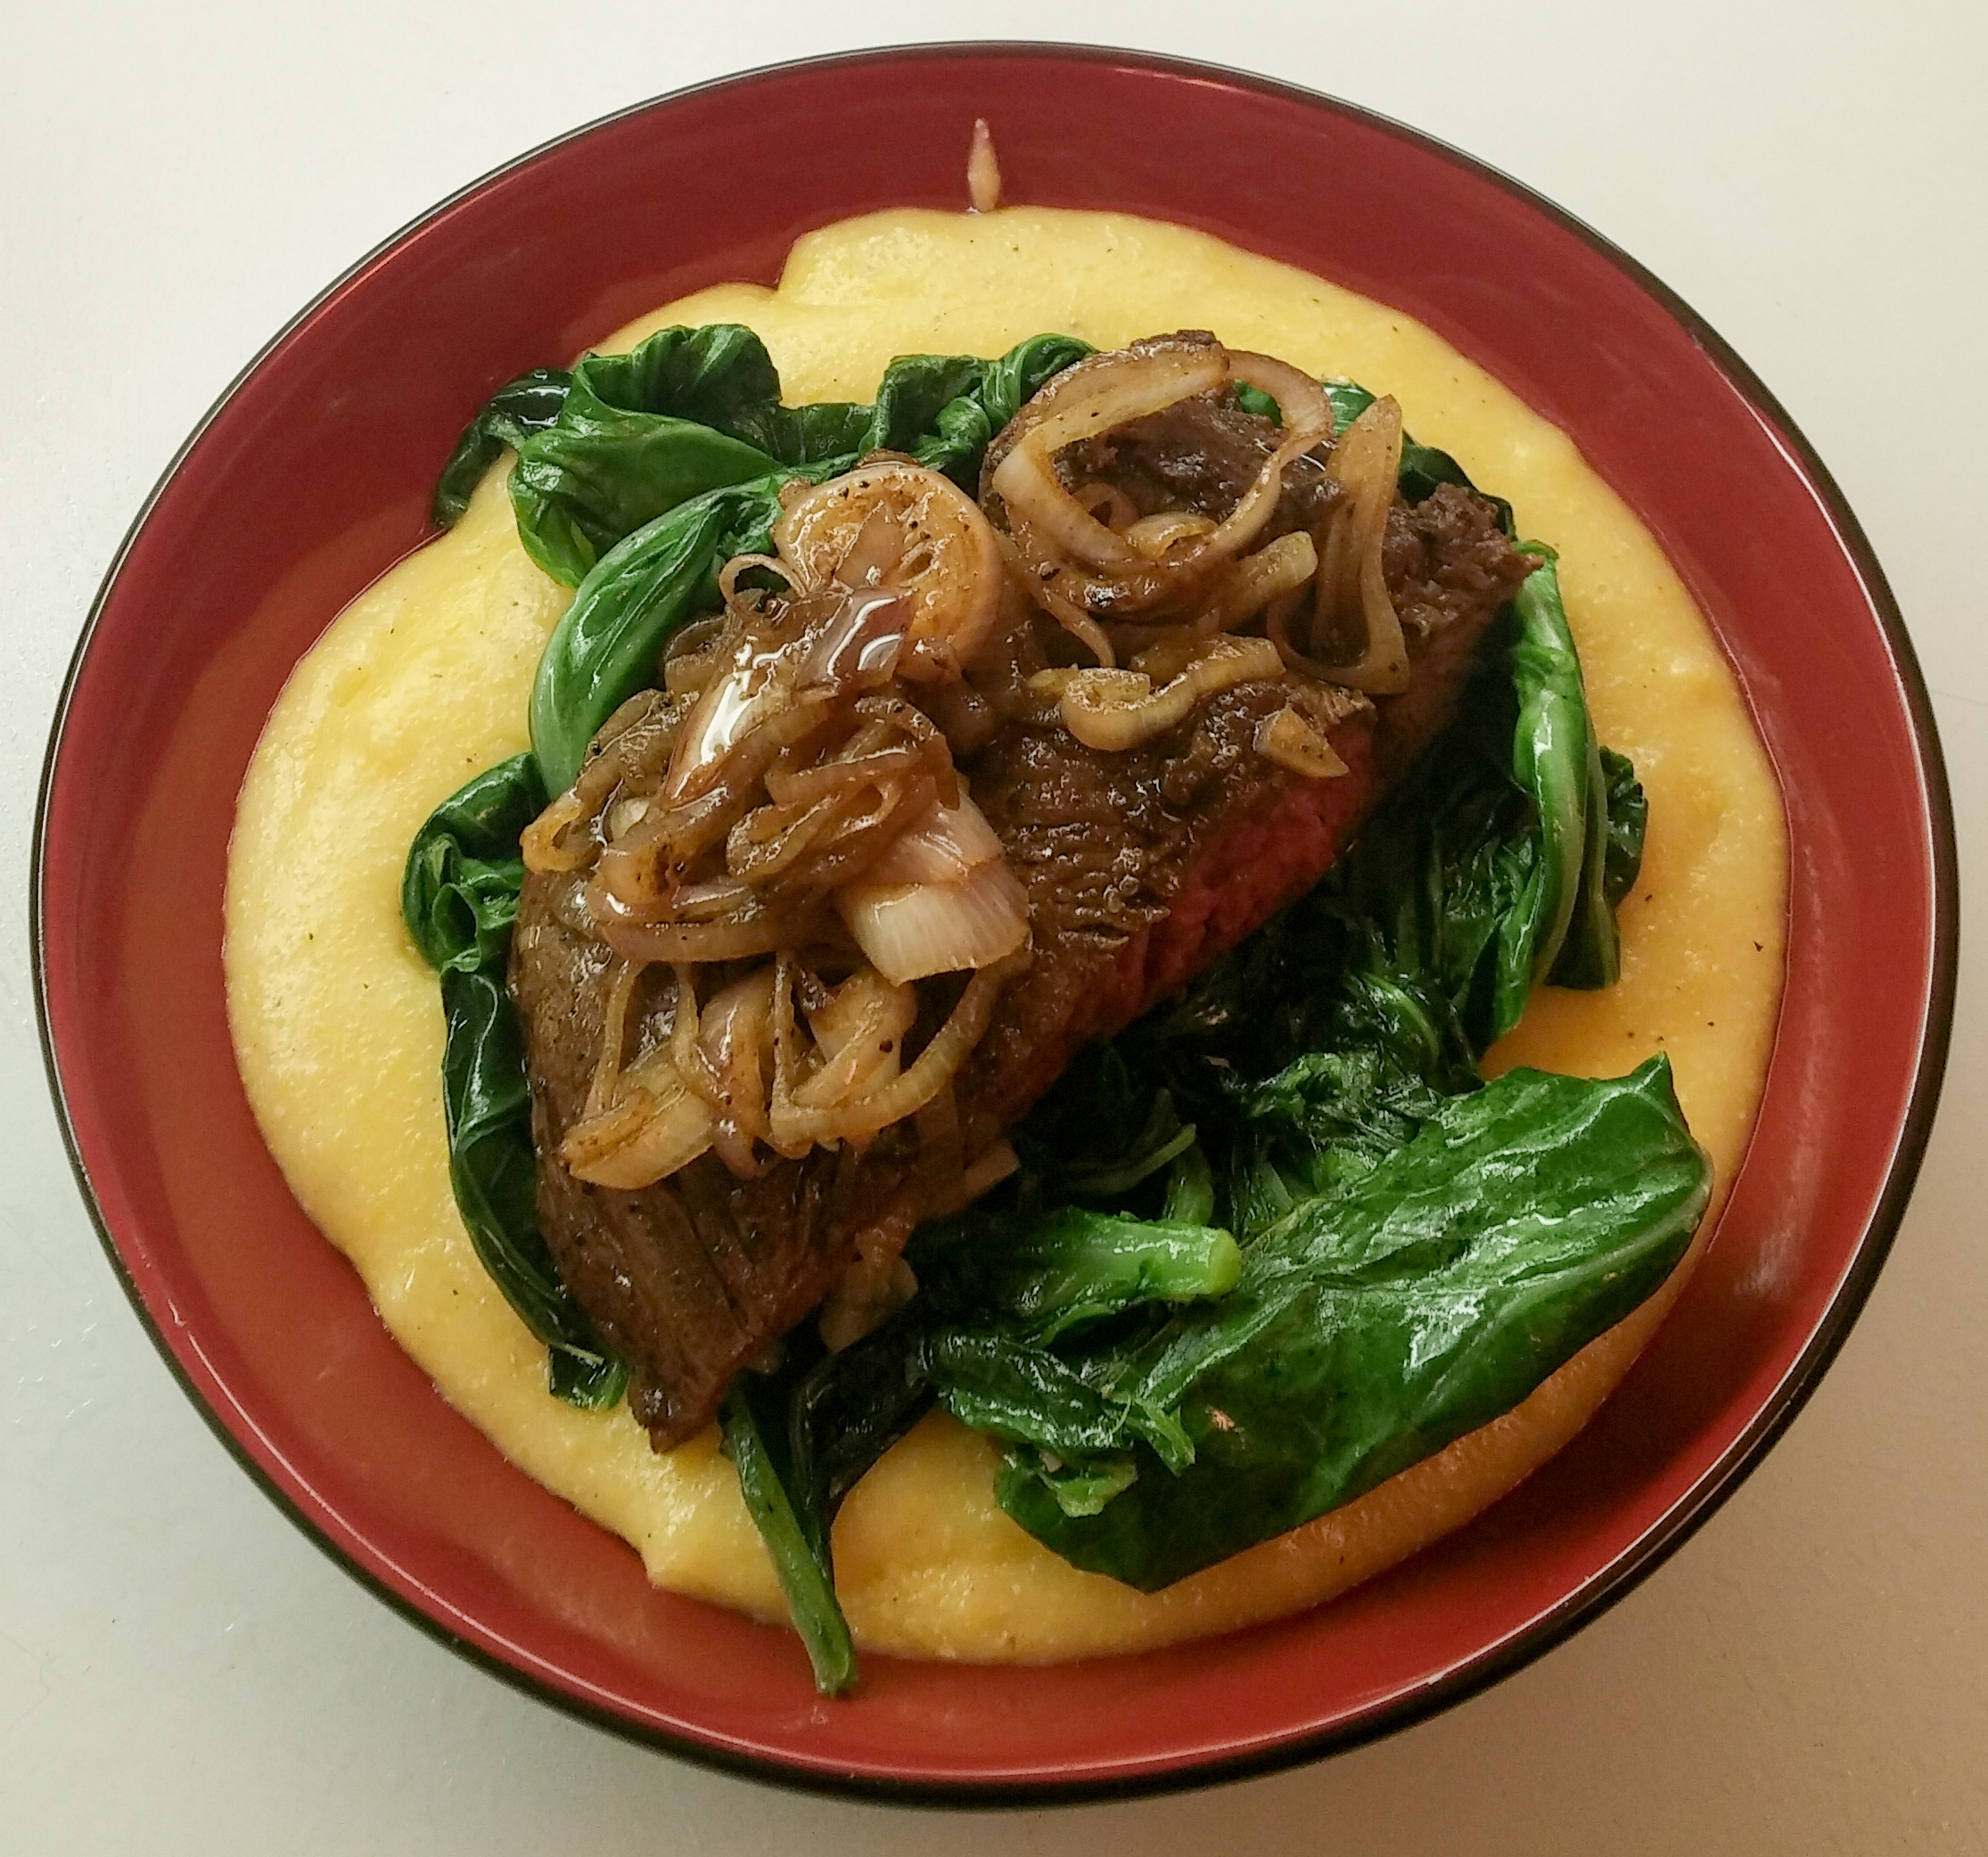 Garlic eat for Creamy polenta with mushrooms and collards